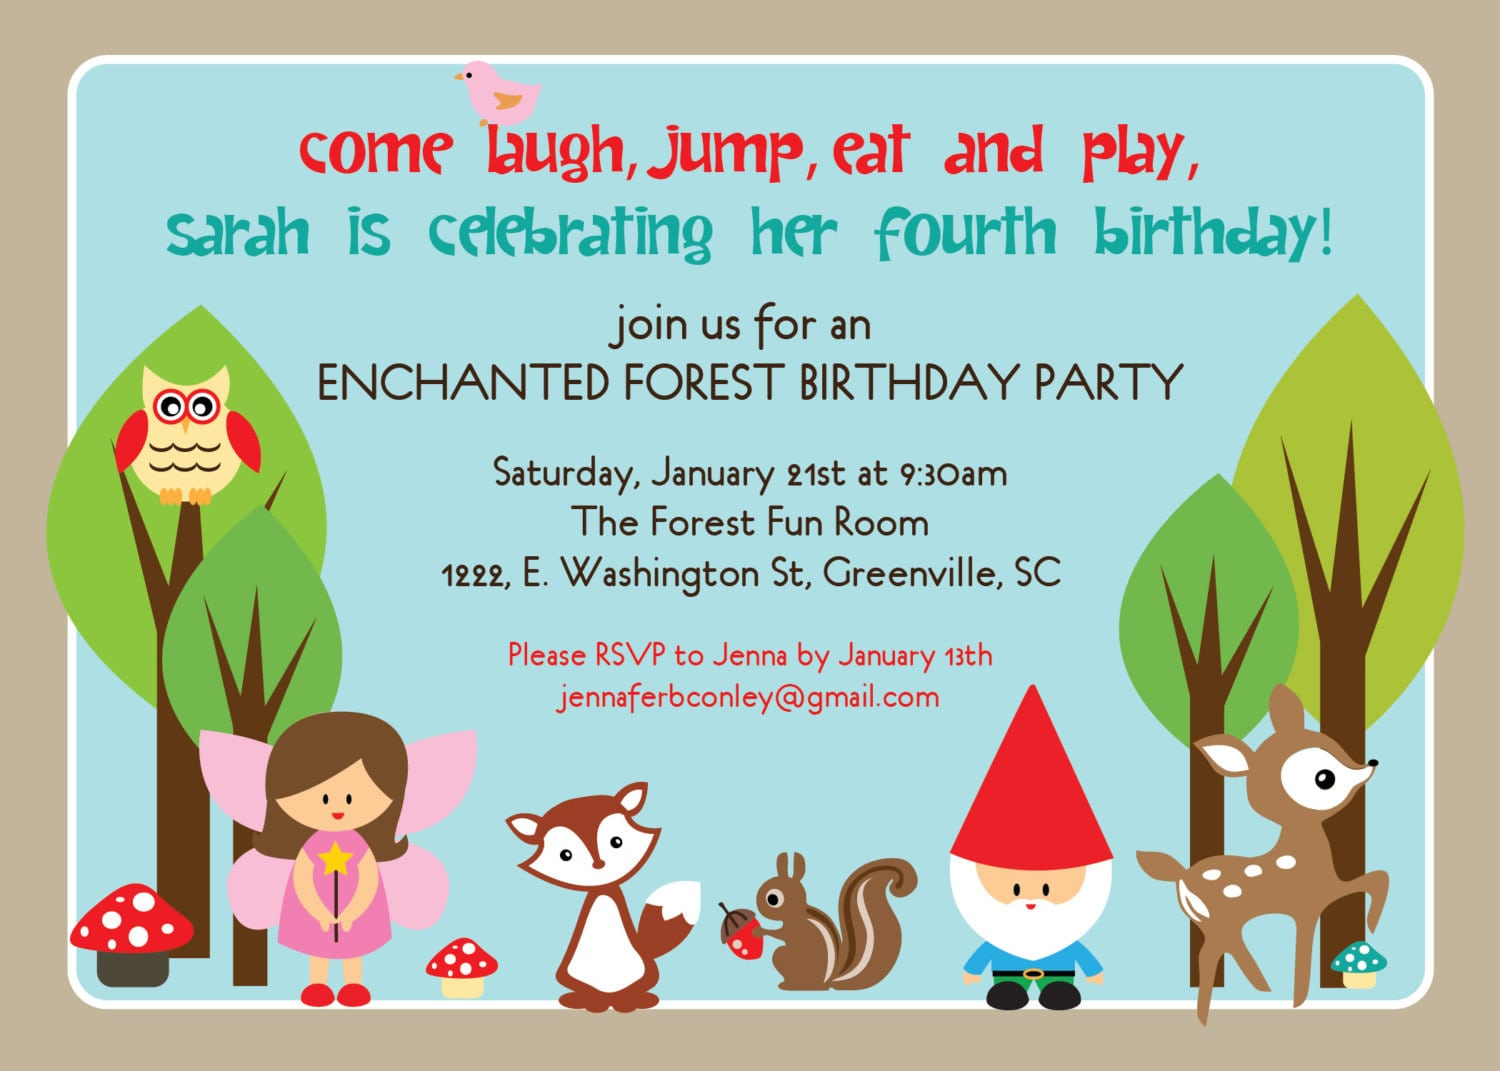 Sample invitation letter for birthday party sampleinvitationletterforbirthdayparty5g stopboris Images